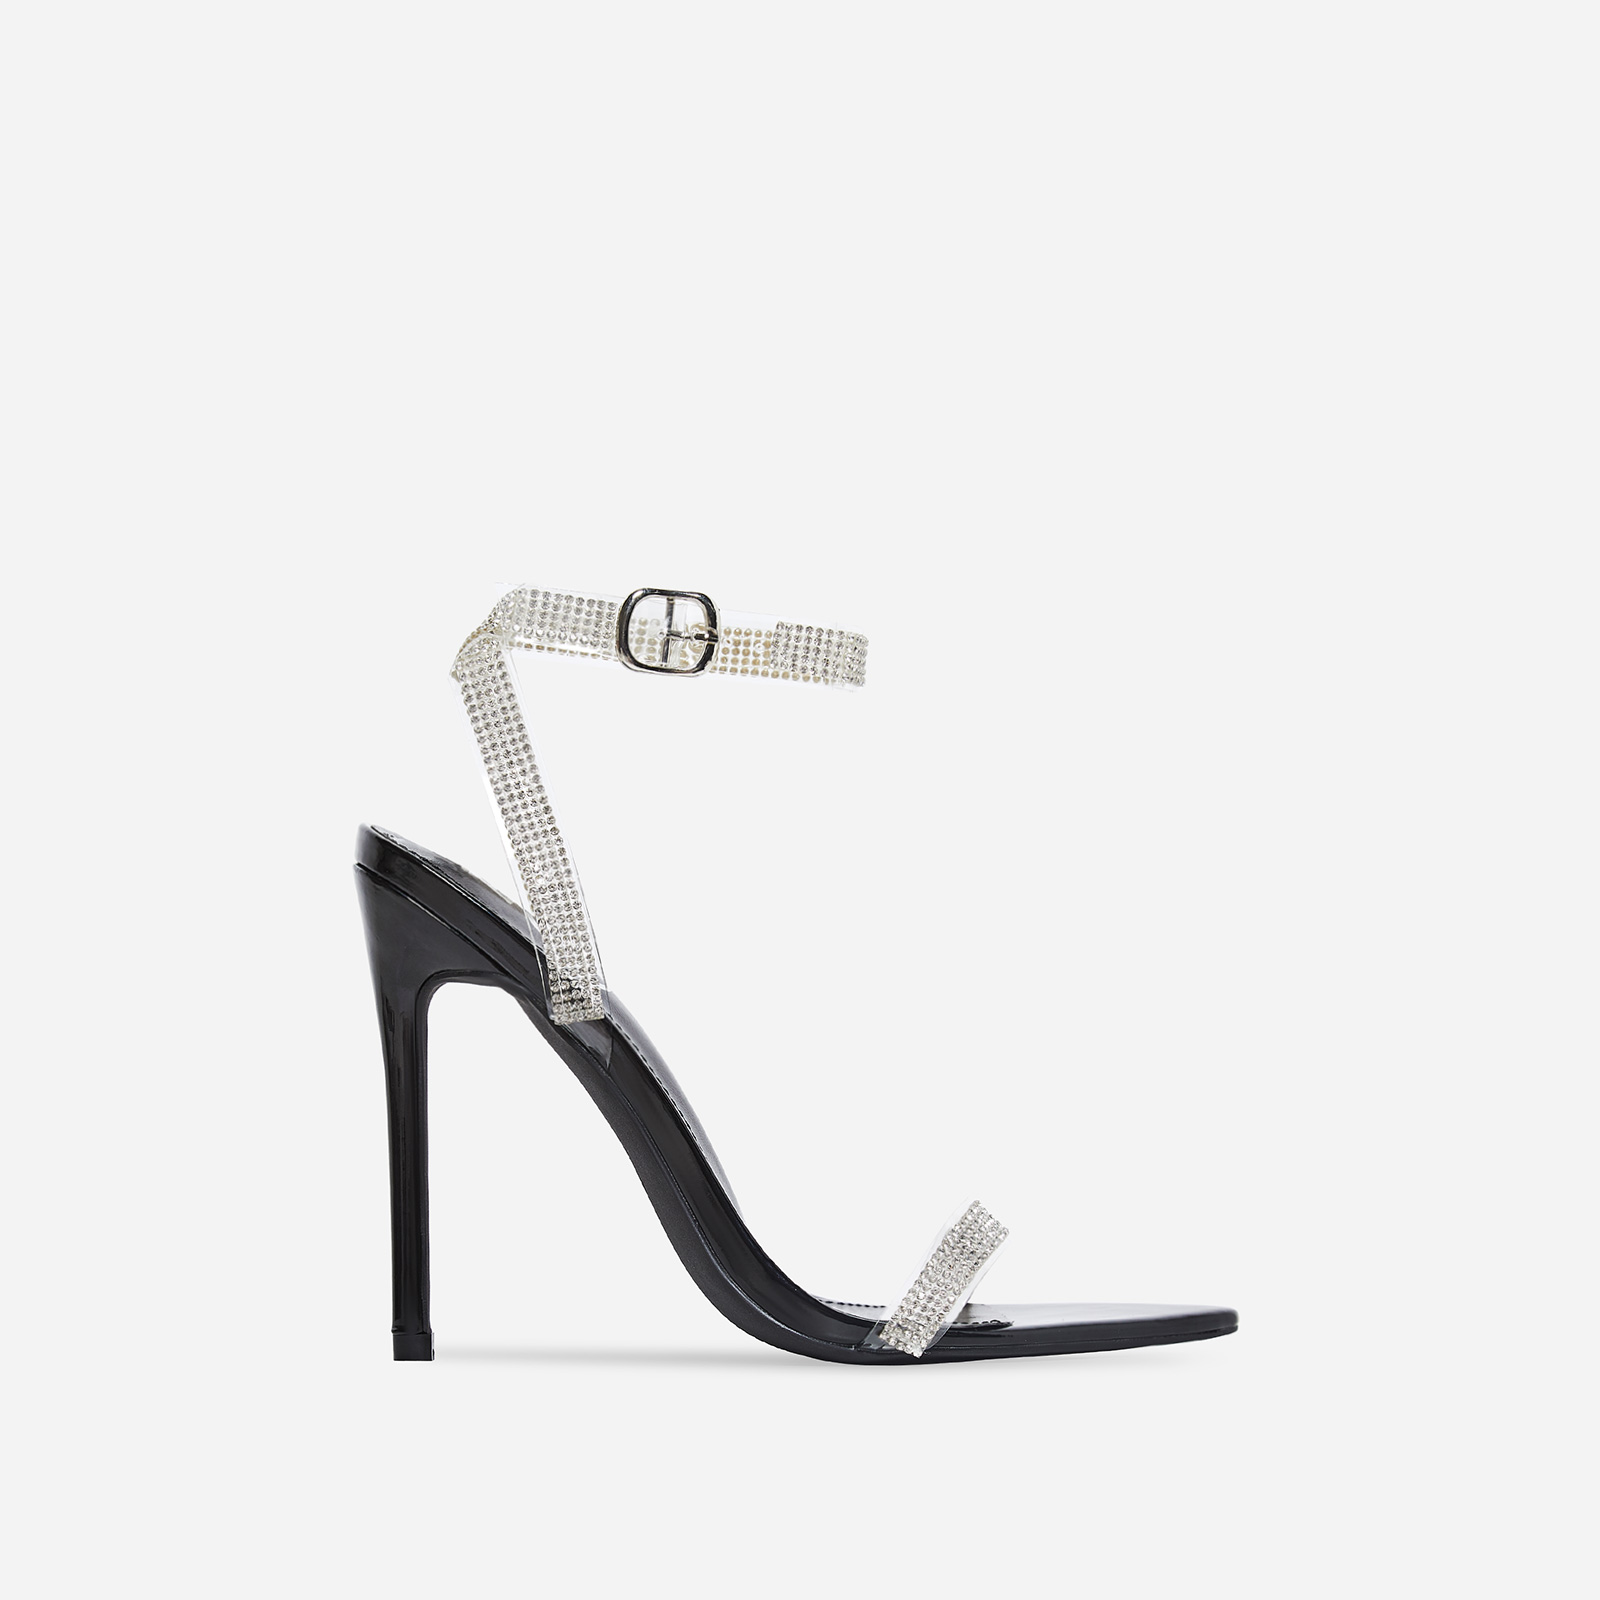 String Diamante Pointed Toe Heel In Black Patent